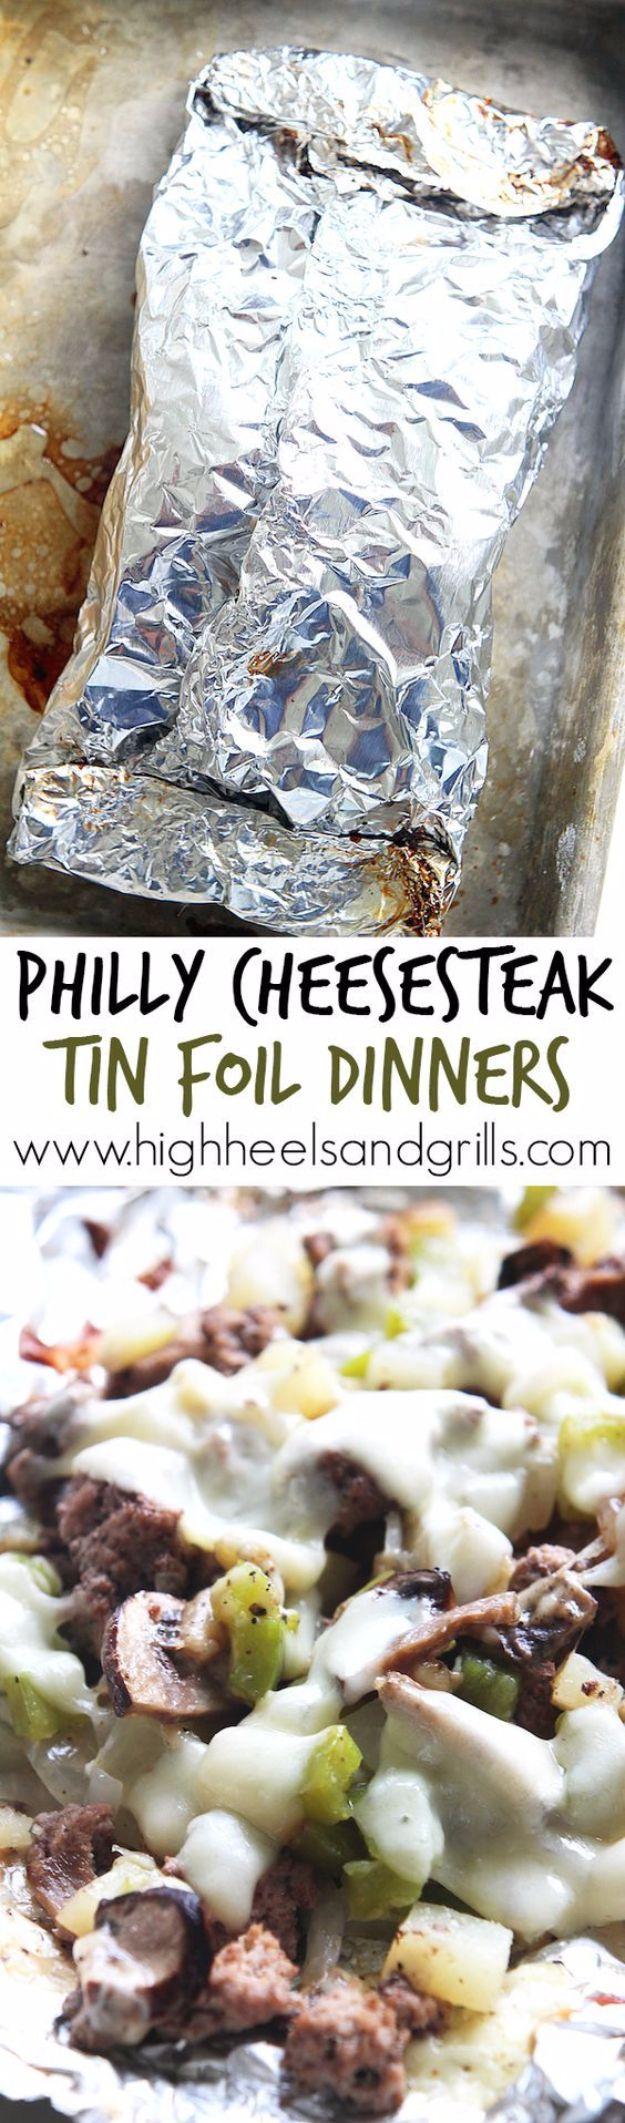 DIY Tin Foil Camping Recipes - Philly Cheesesteak Tin Foil Dinners - Tin Foil Dinners, Ideas for Camping Trips and On Grill. Hamburger, Chicken, Healthy, Fish, Steak , Easy Make Ahead Recipe Ideas for the Campfire. Breakfast, Lunch, Dinner and Dessert, Snacks all Wrapped in Foil for Quick Cooking http://diyjoy.com/camping-recipes-tin-foil